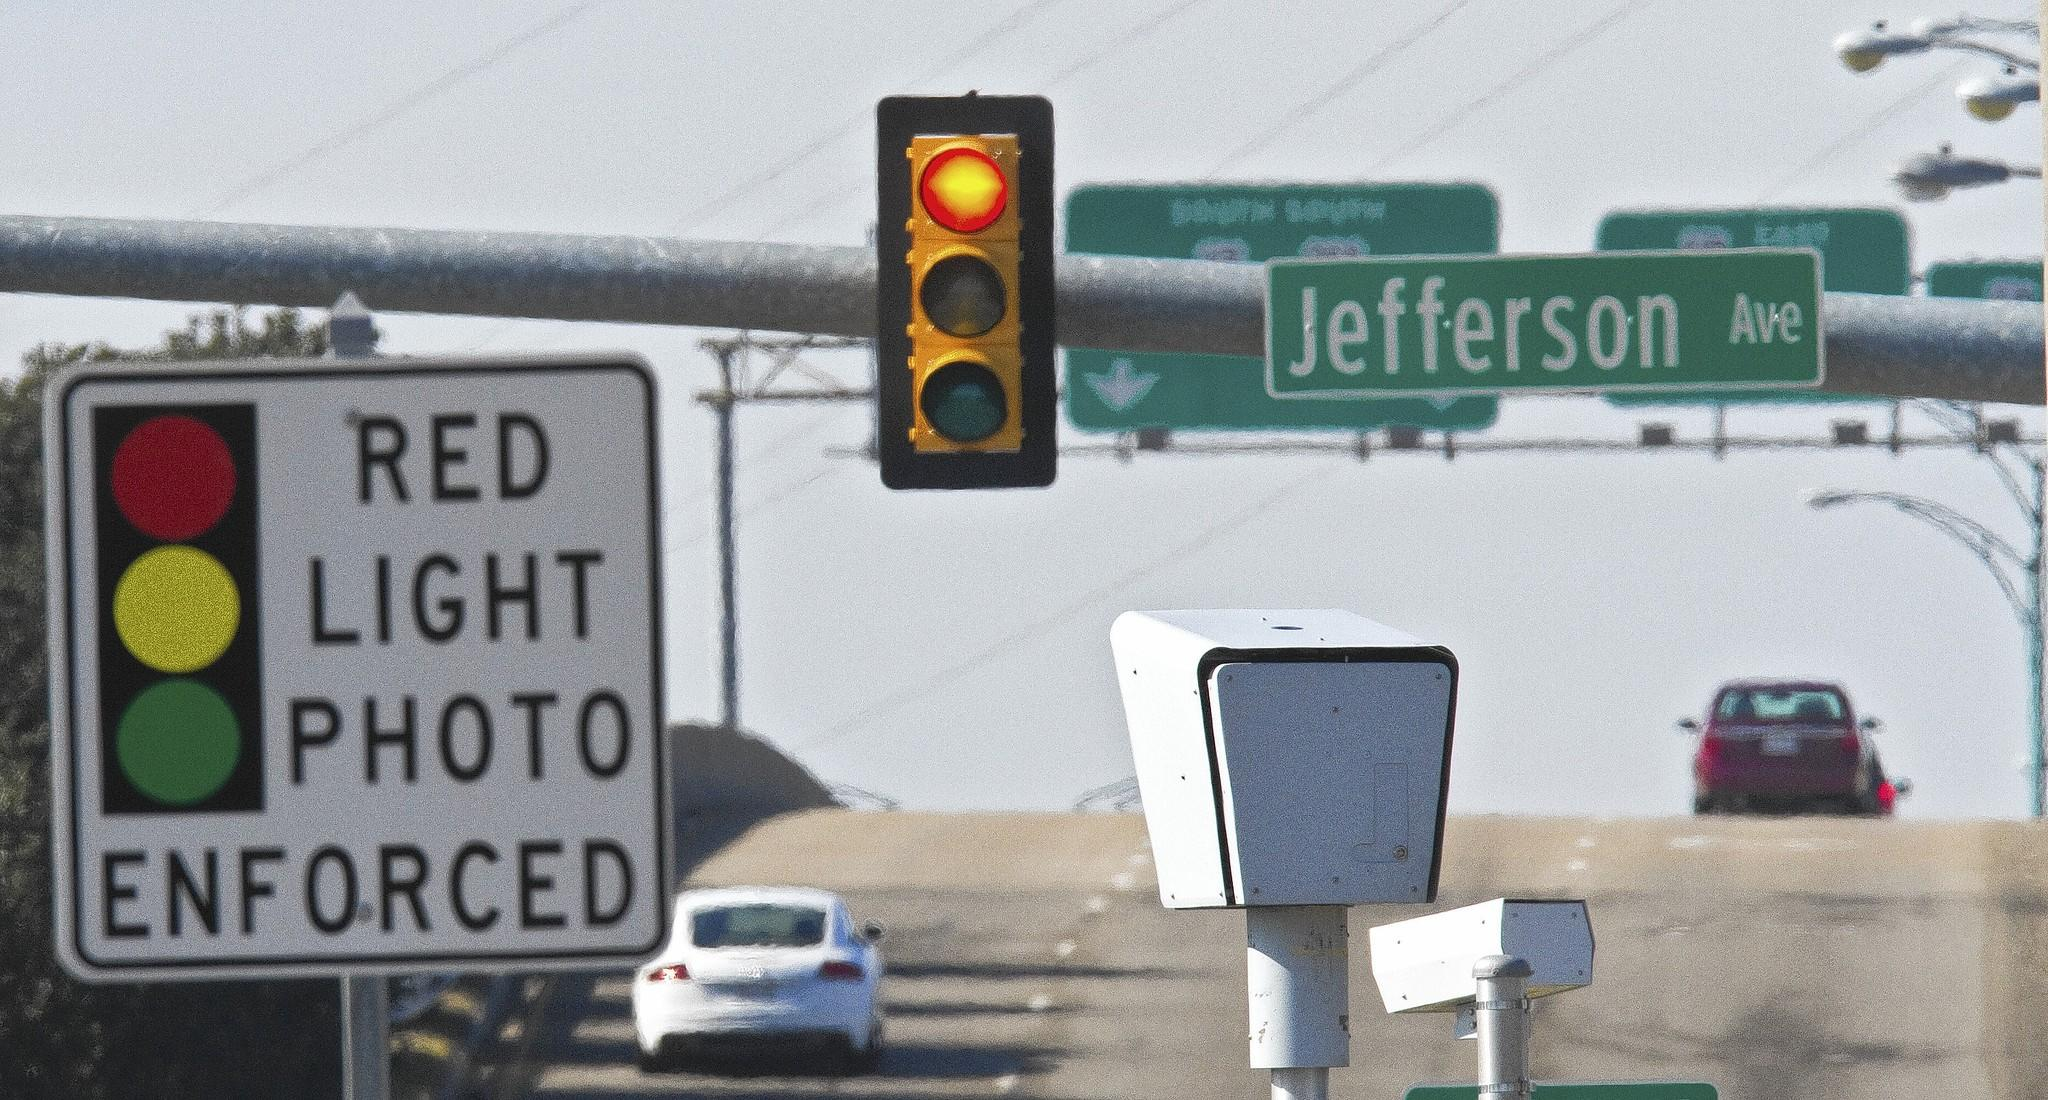 A red light camera monitors traffic at the intersection of Jefferson Avenue and Mercury Boulevard on Tuesday morning.